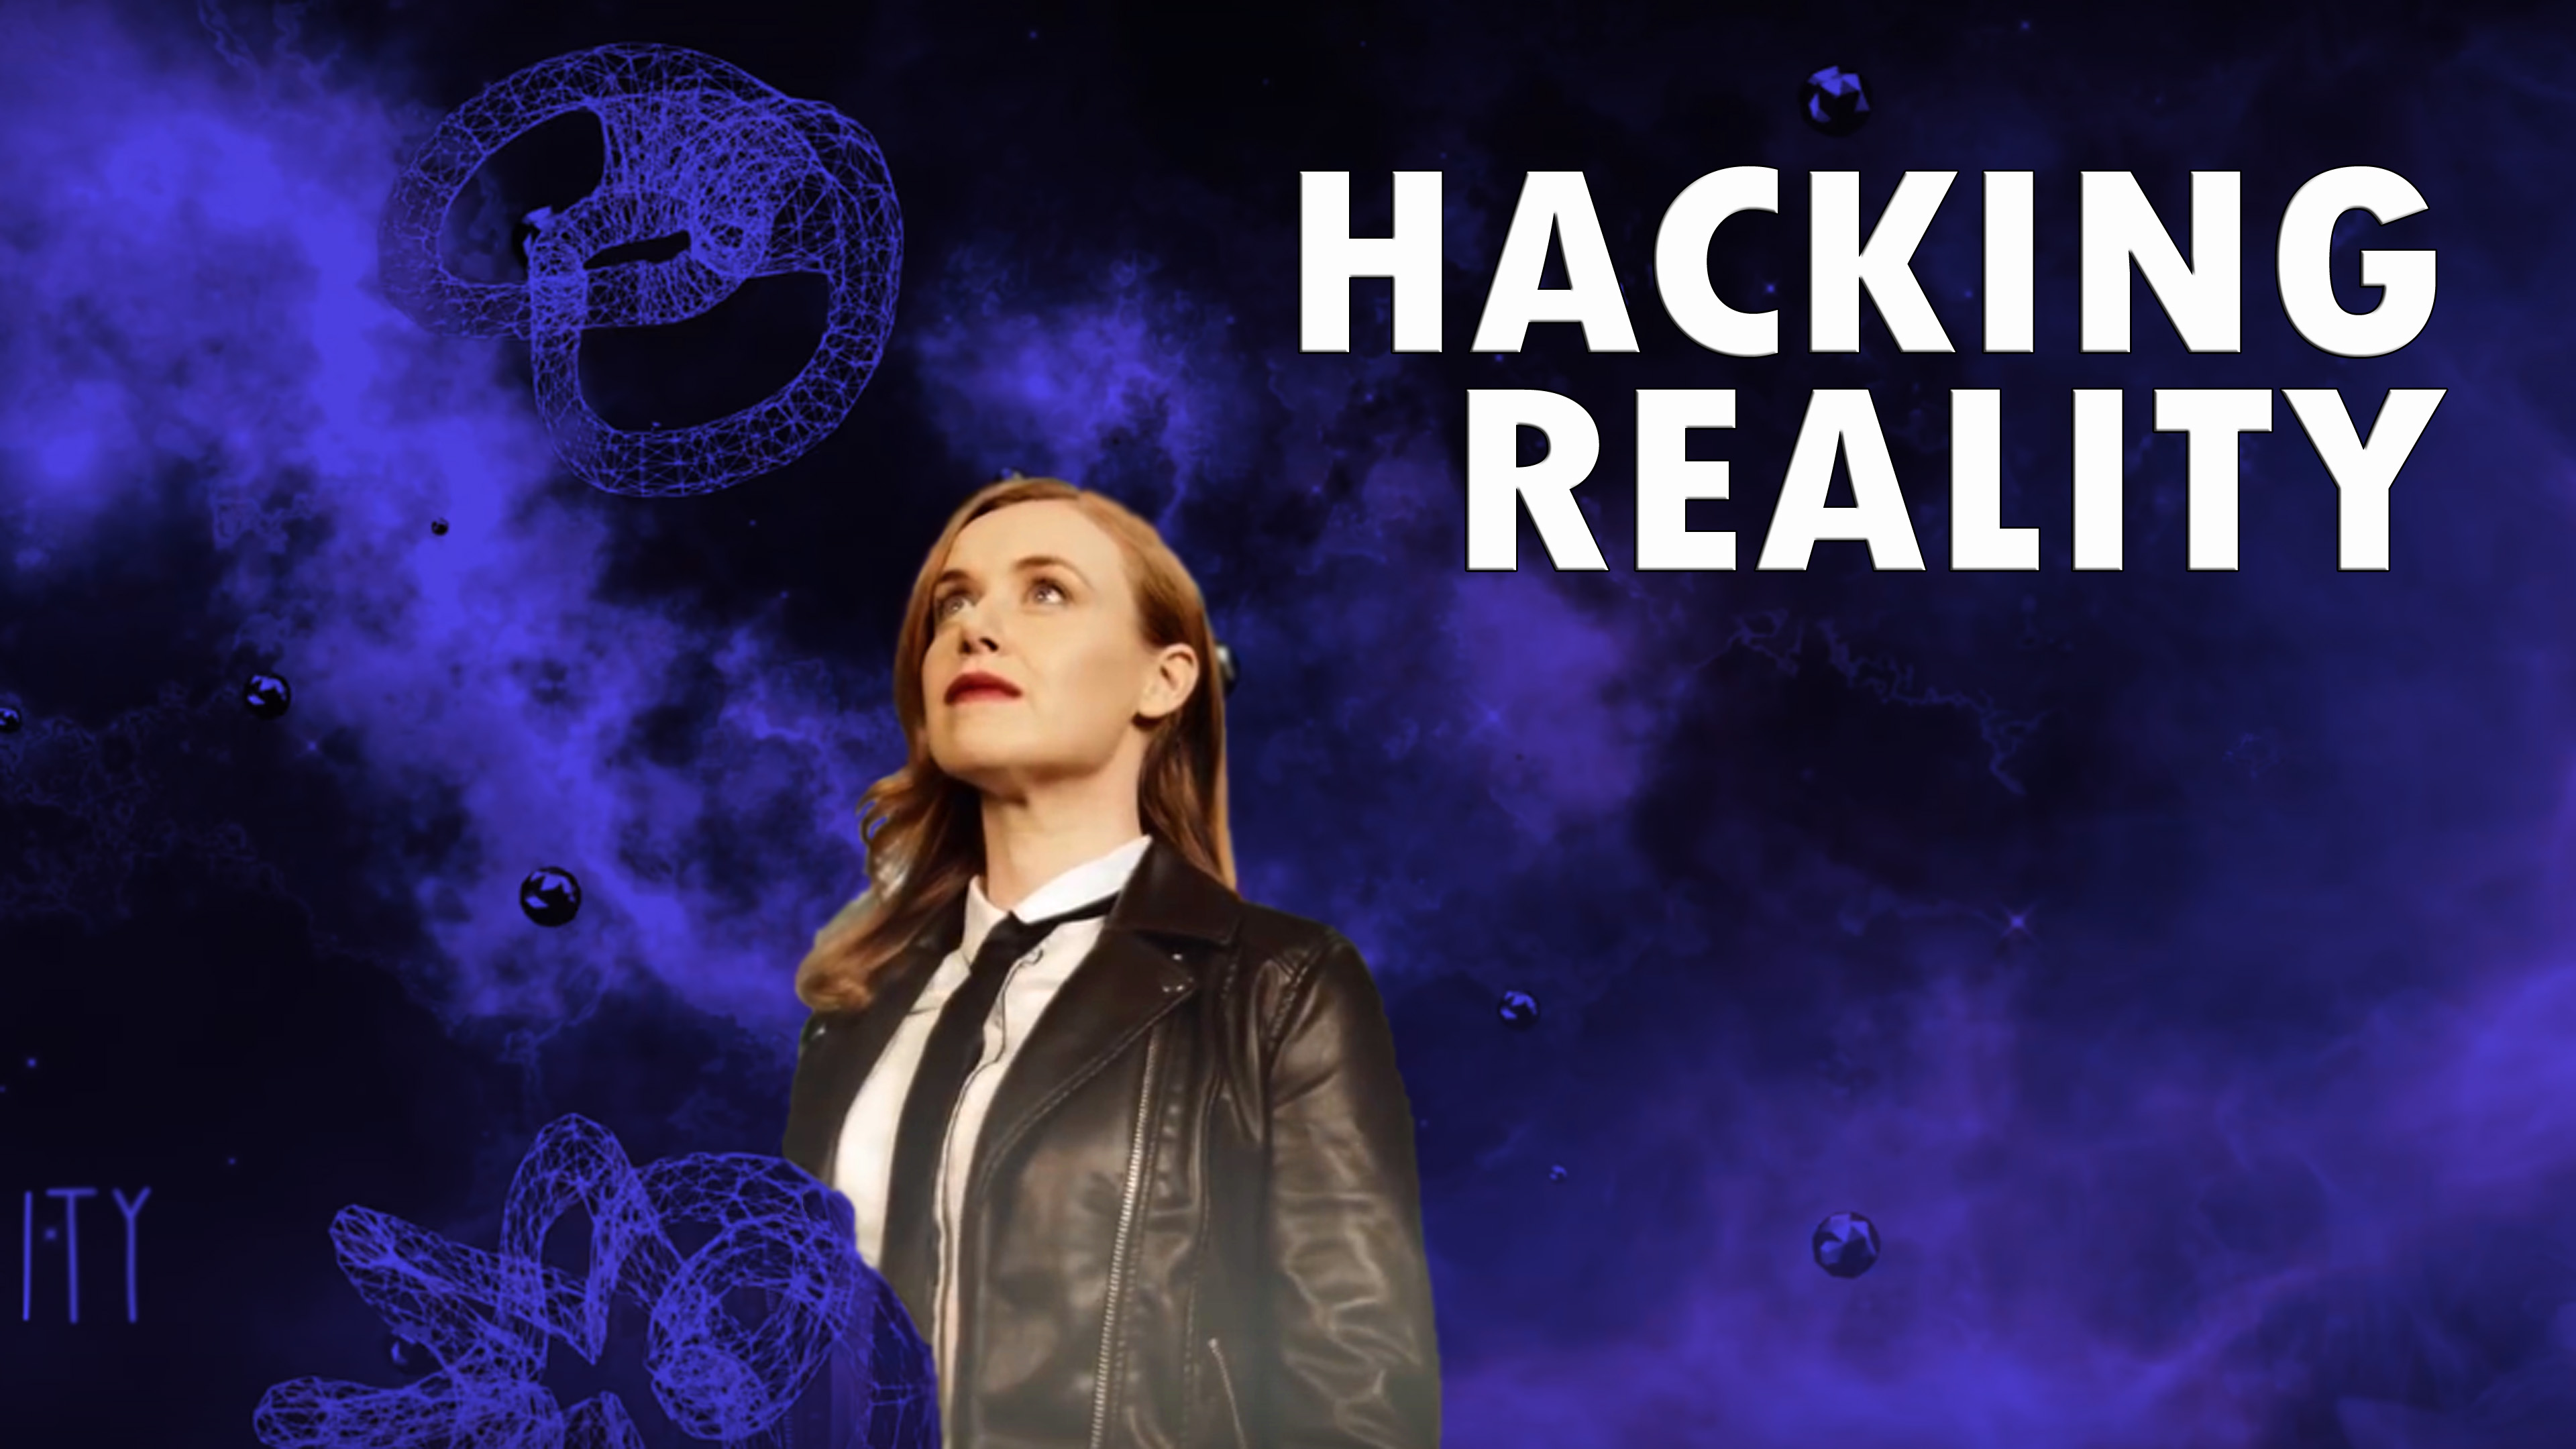 Hacking Reality